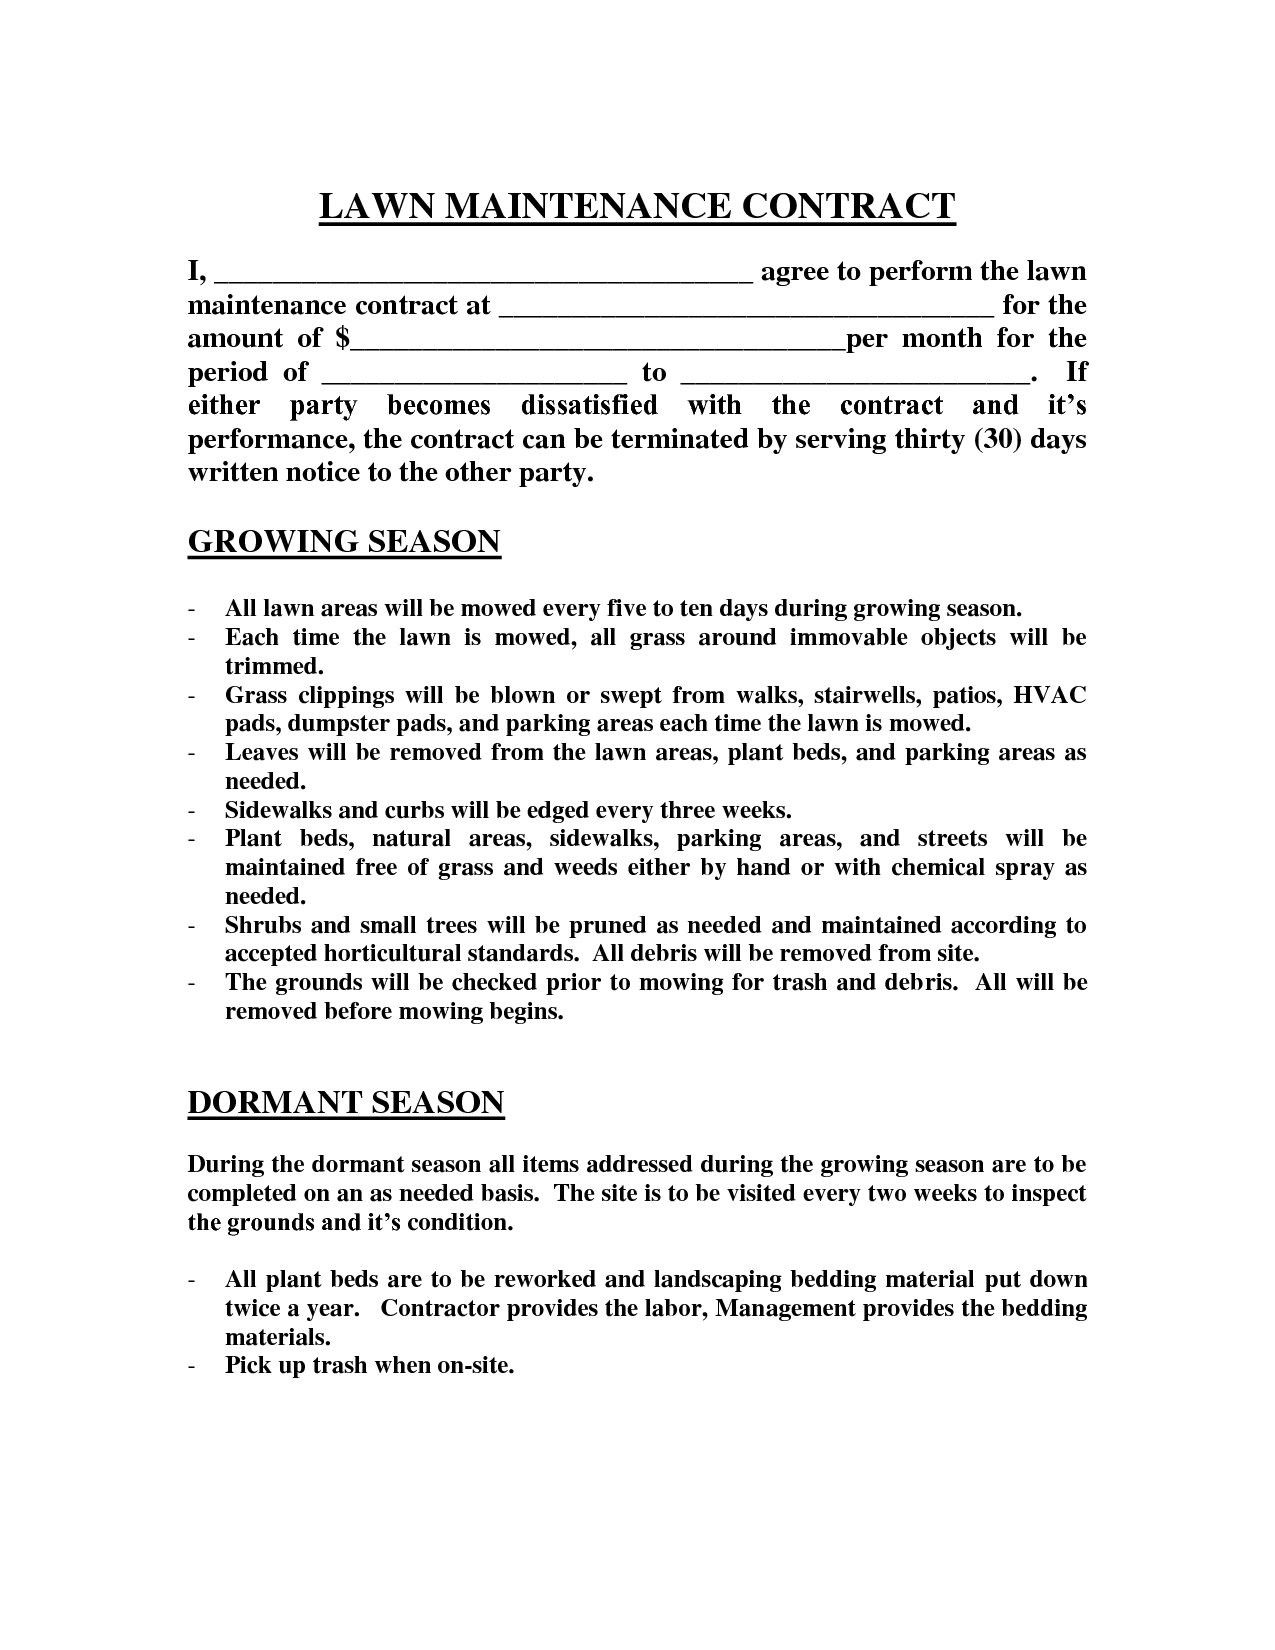 Lawn Maintenance Contract Images Lawn Maintenance